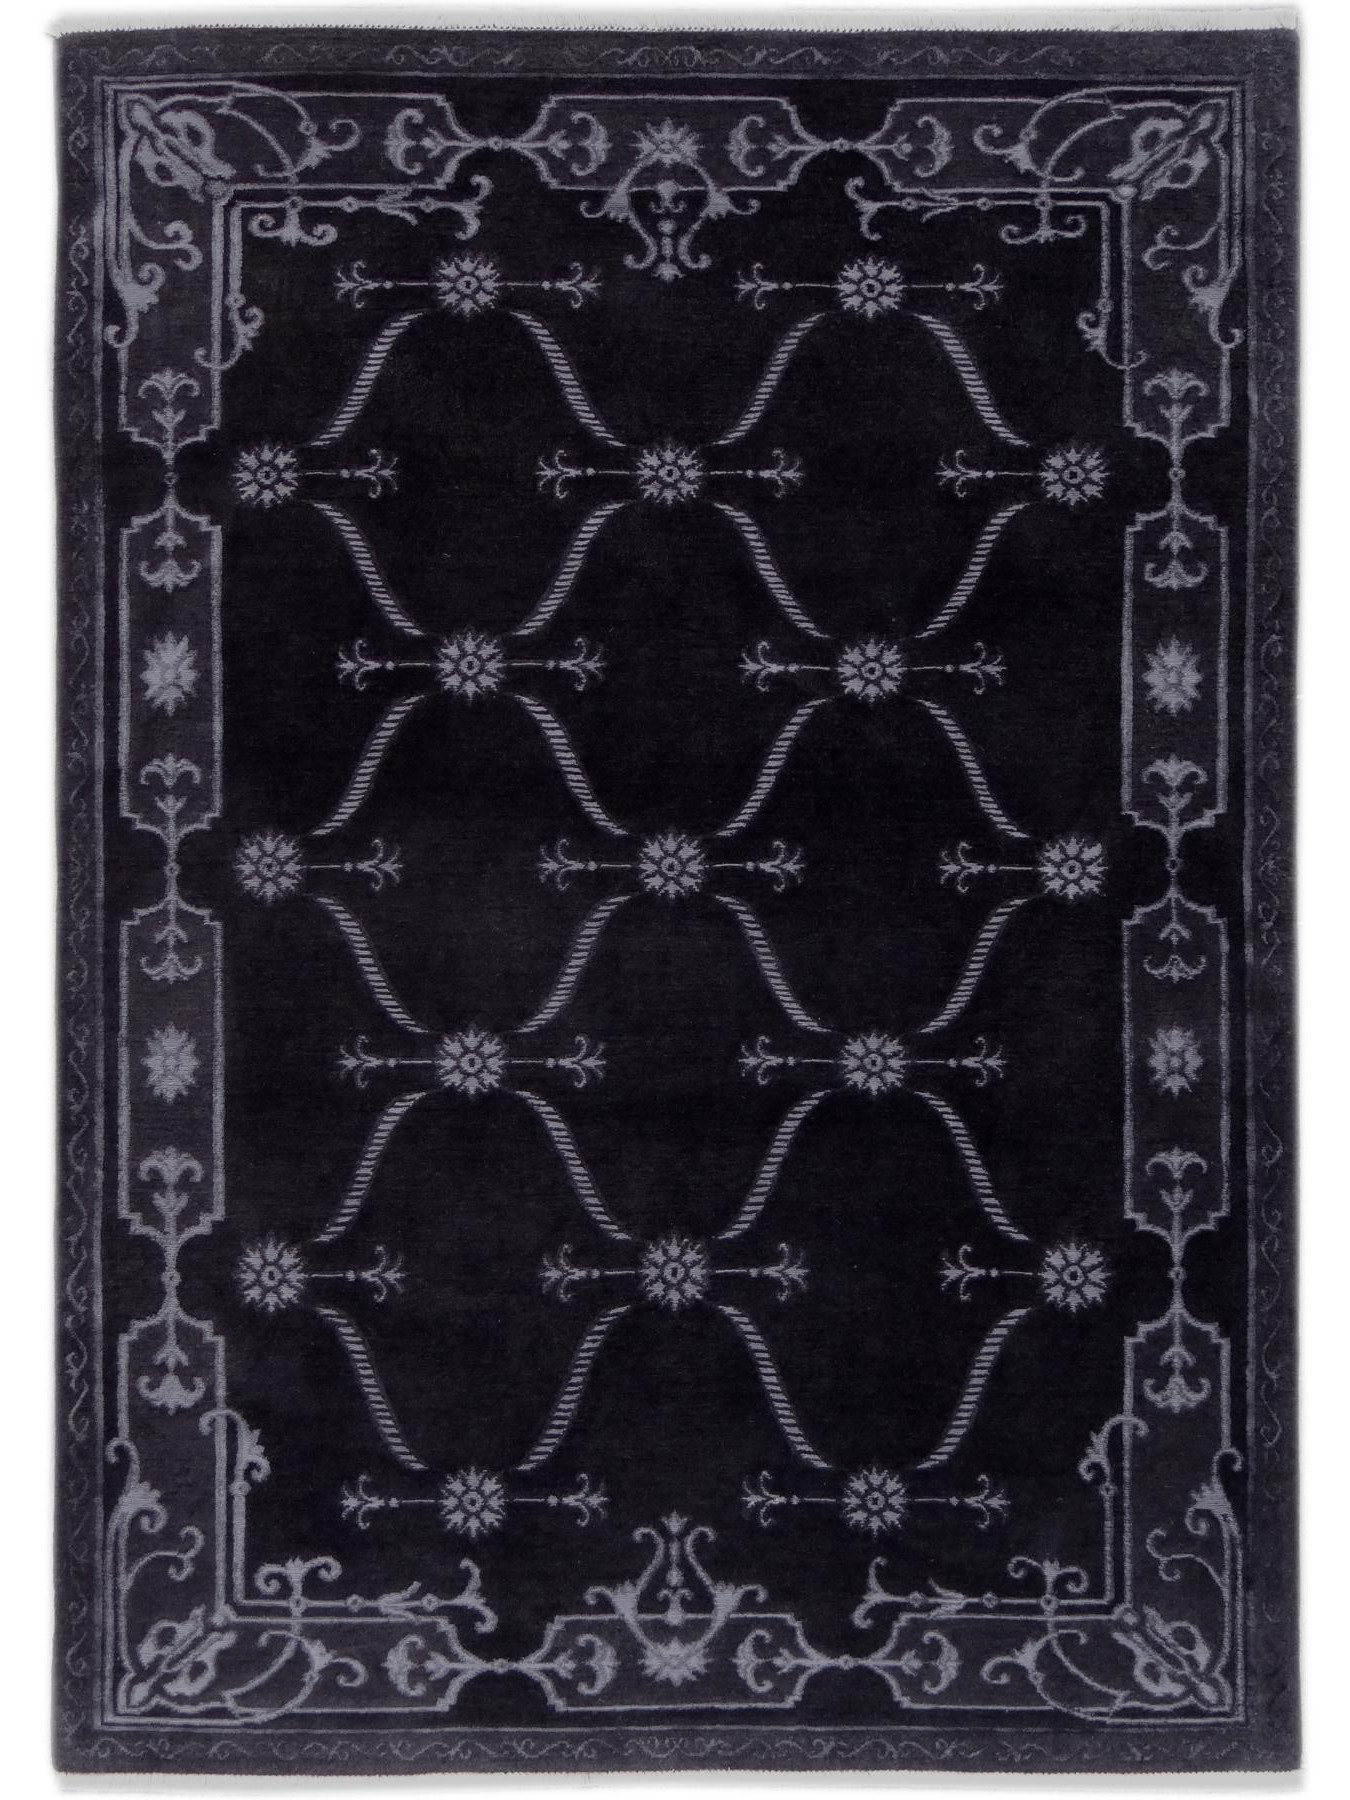 Luxury carpets - CARTOUCHES - S2522 GREY